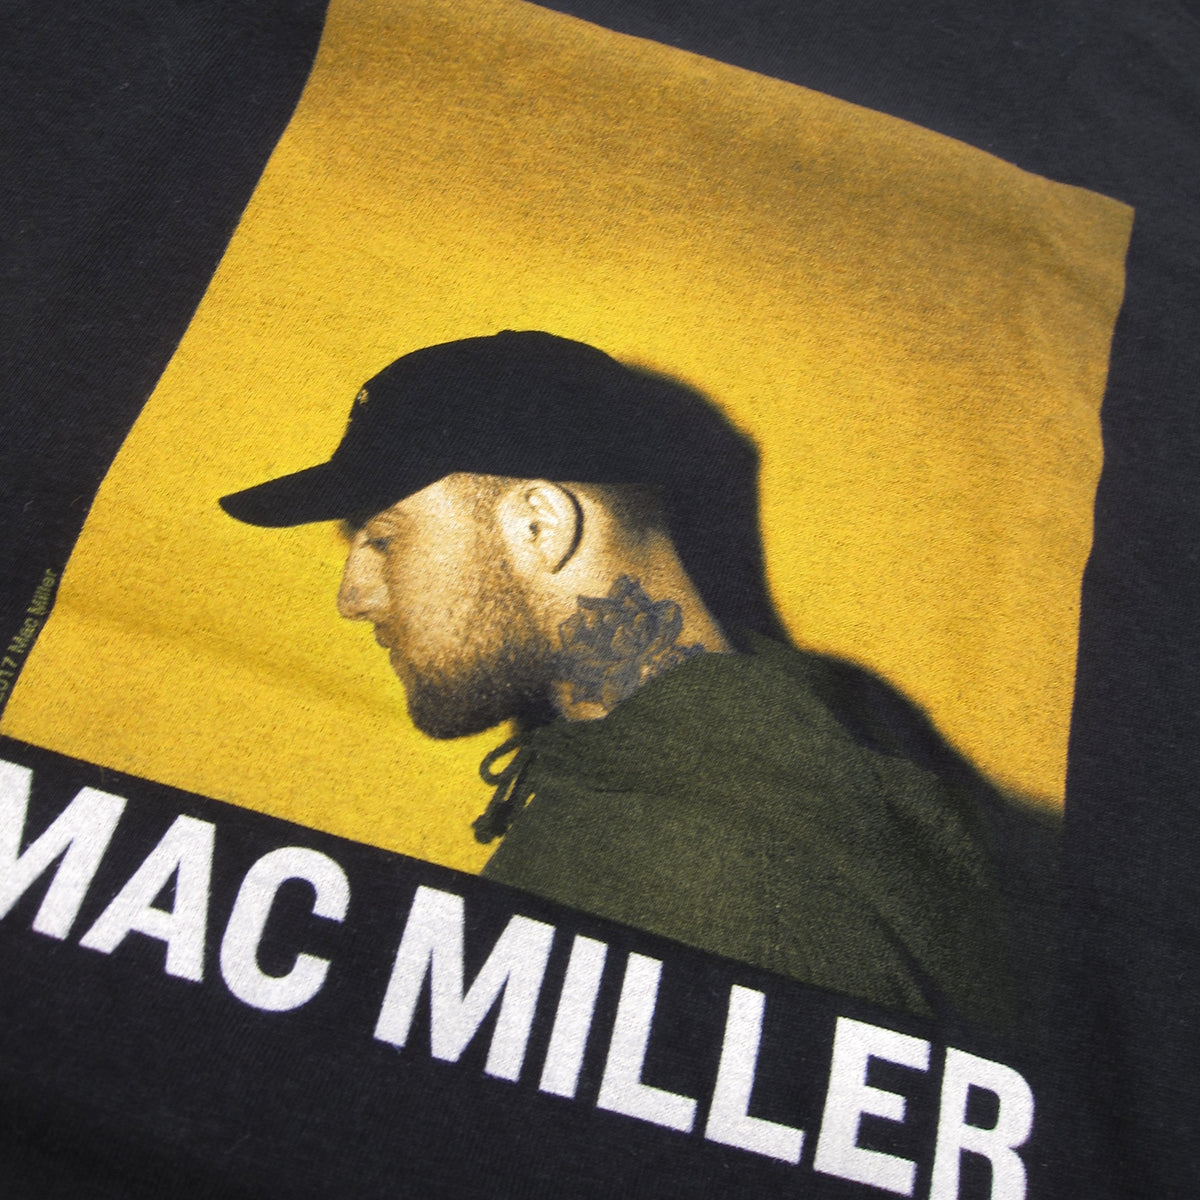 Mac Miller: Profile Picture Shirt - Black